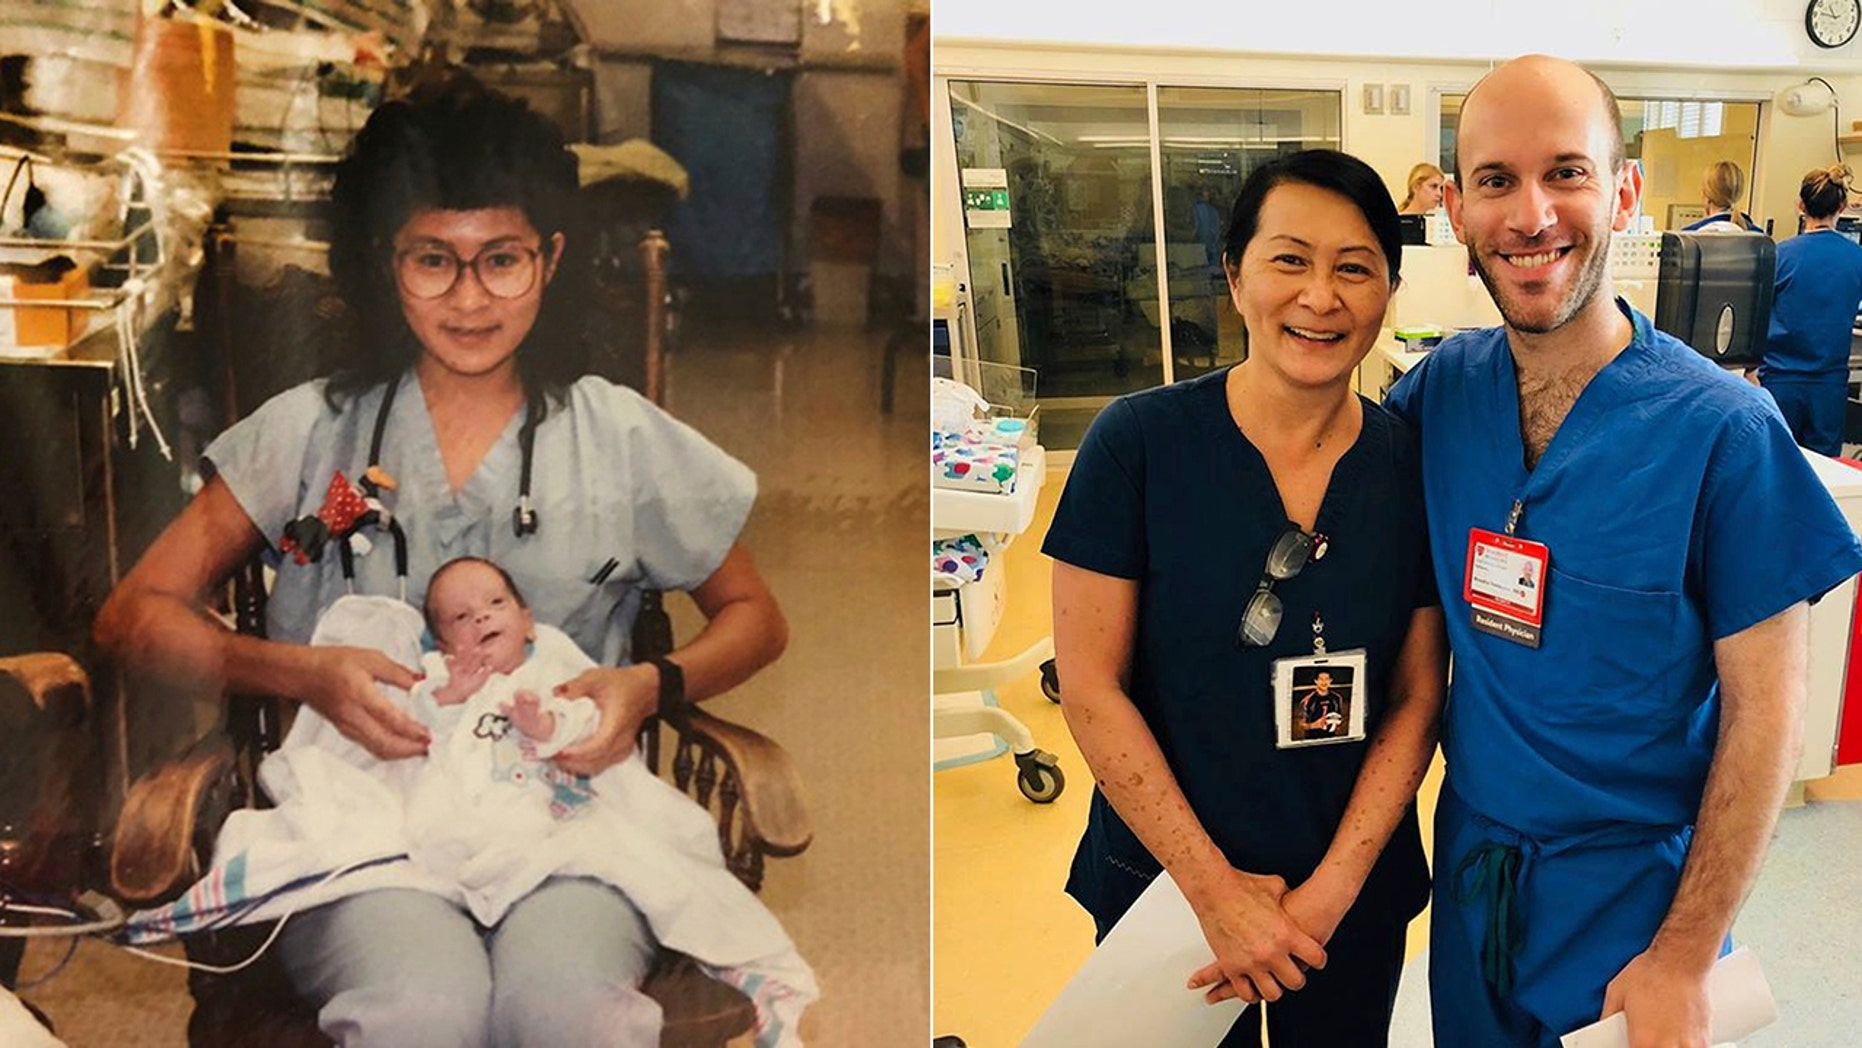 Vilma Wong and Brandon Seminatore first met in 1990 when he was born weighing 2 pounds, 6 ounces.